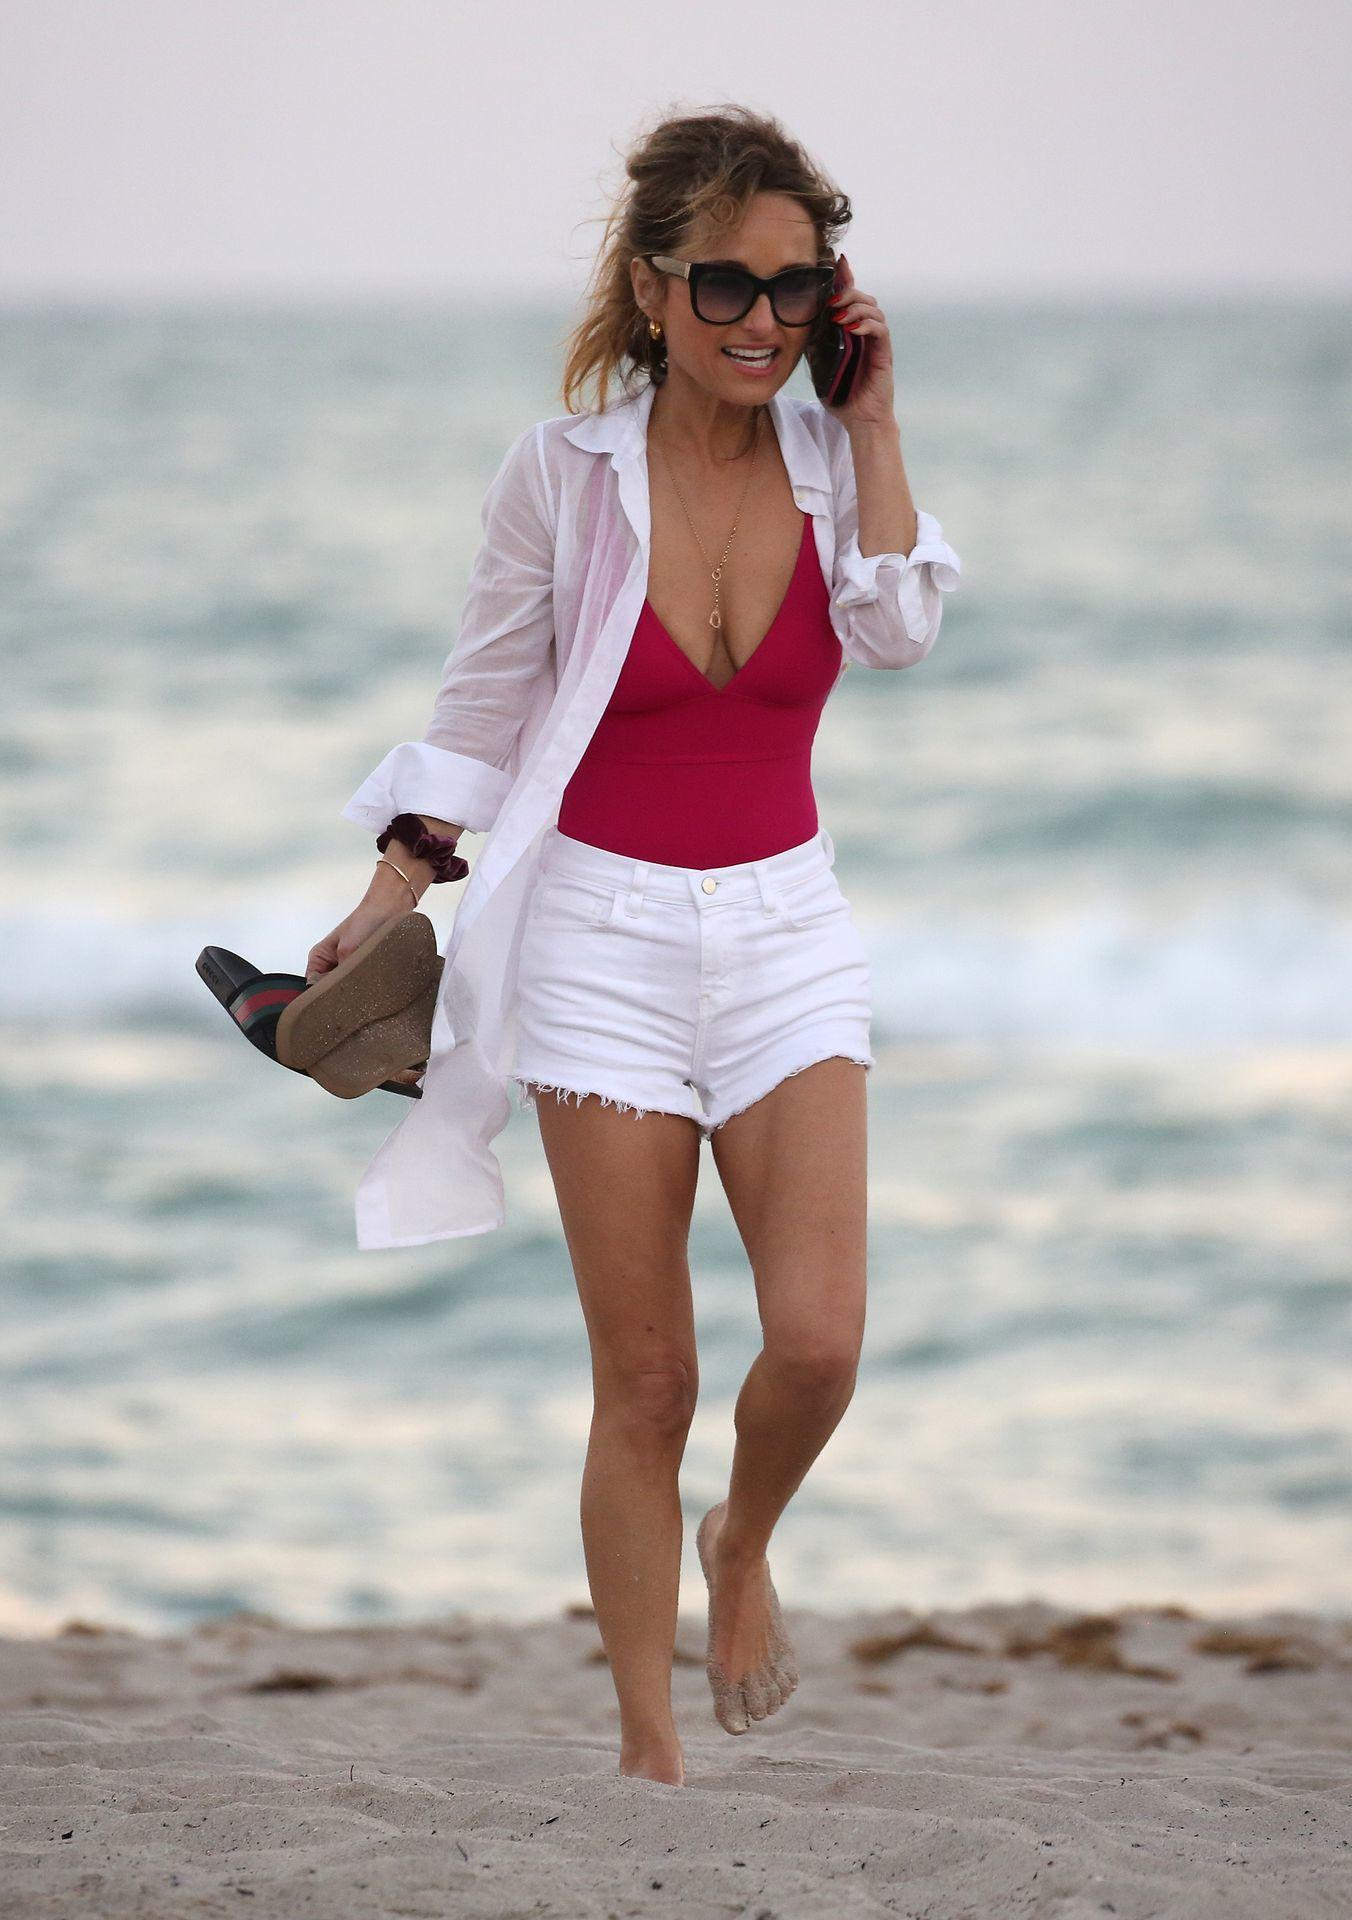 61 Sexiest Giada De Laurentiis Boobs Pictures Are Just The Right Size To Look And Enjoy - GEEKS ...